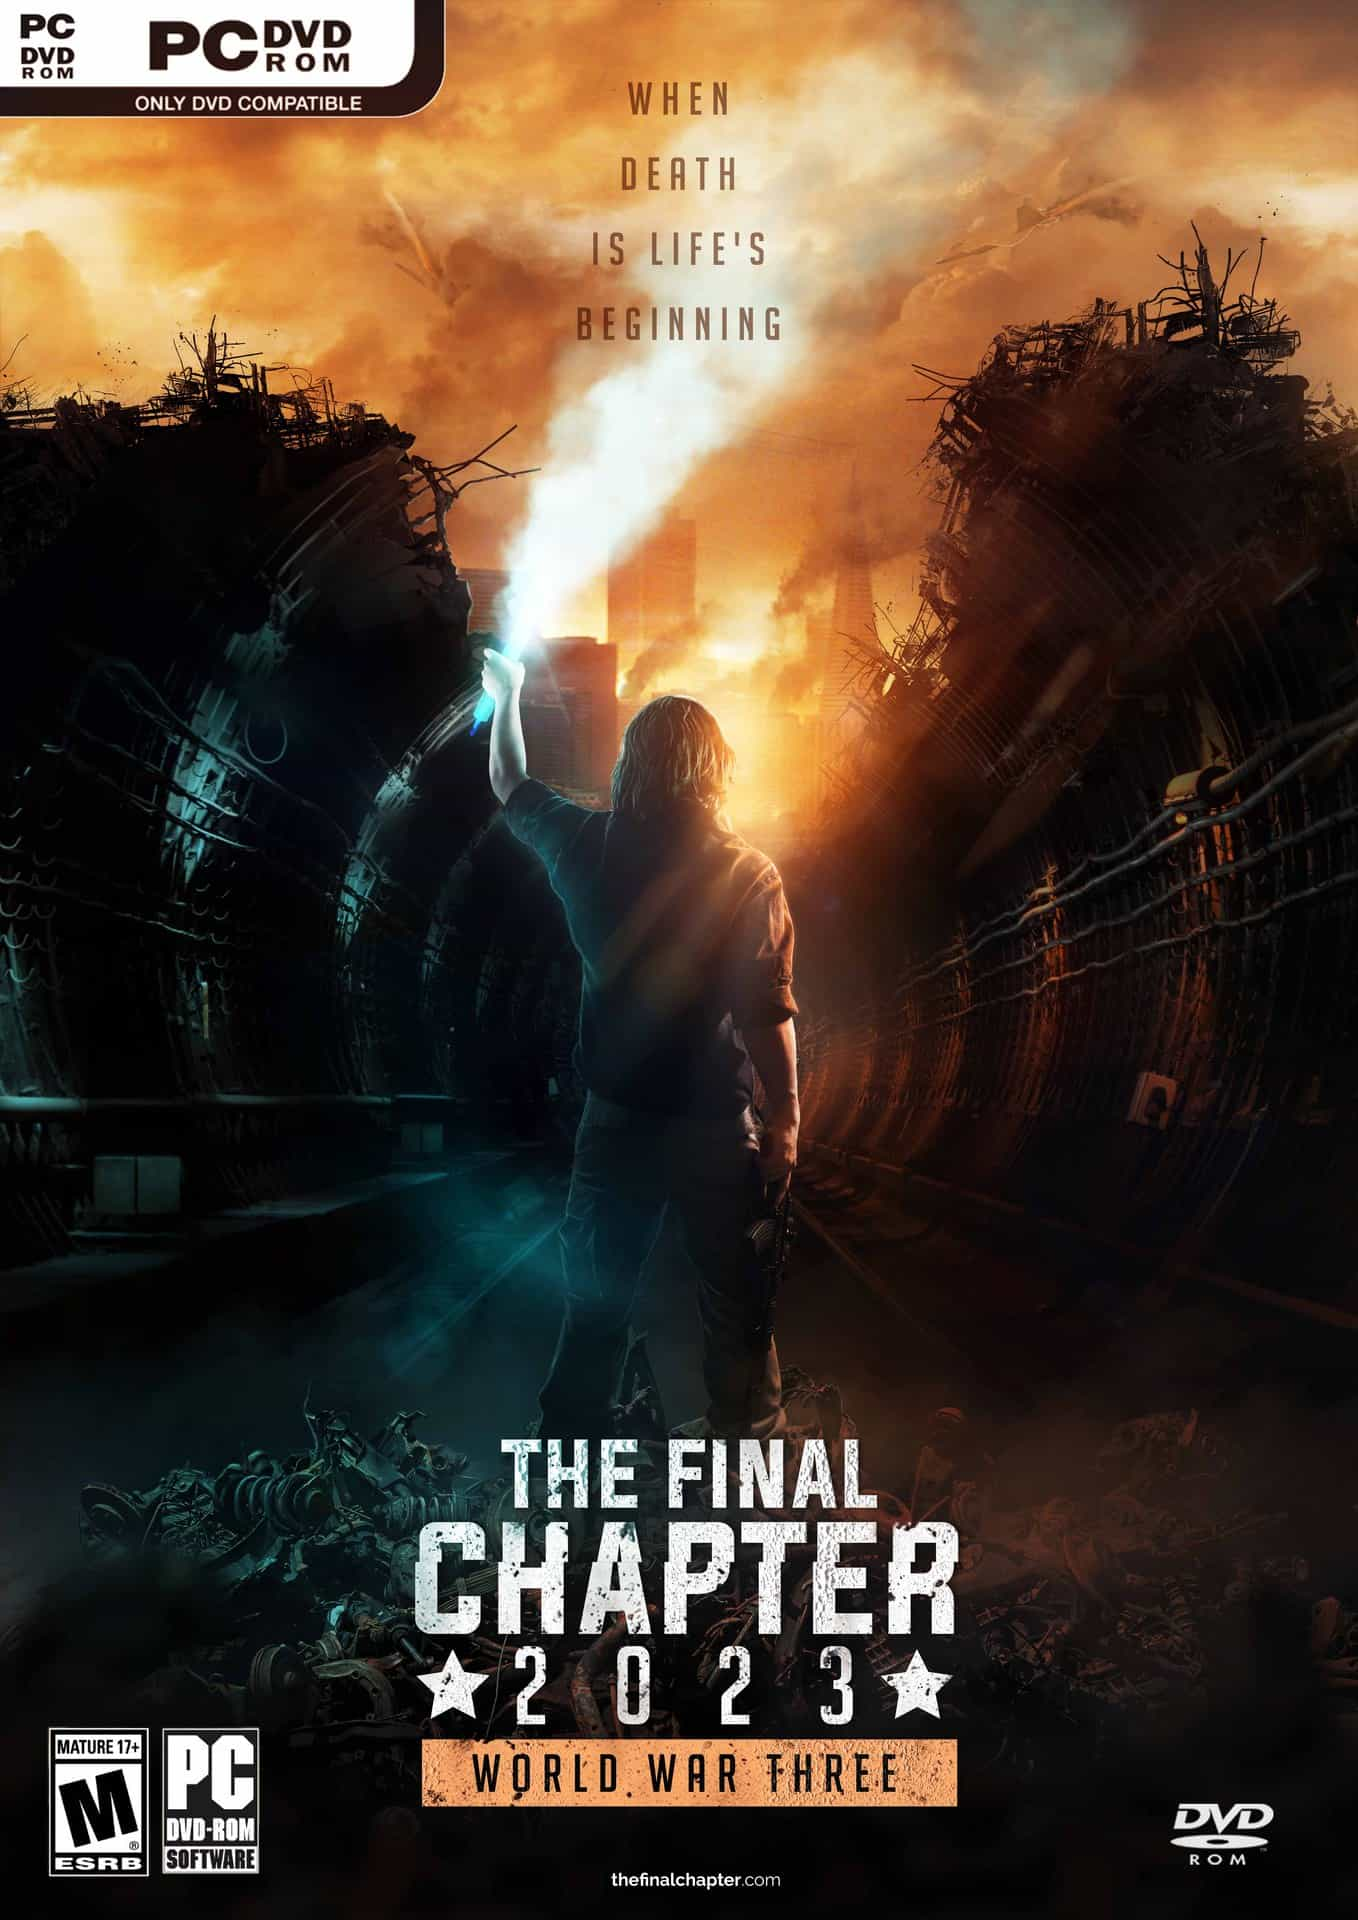 The Final Chapter 2023